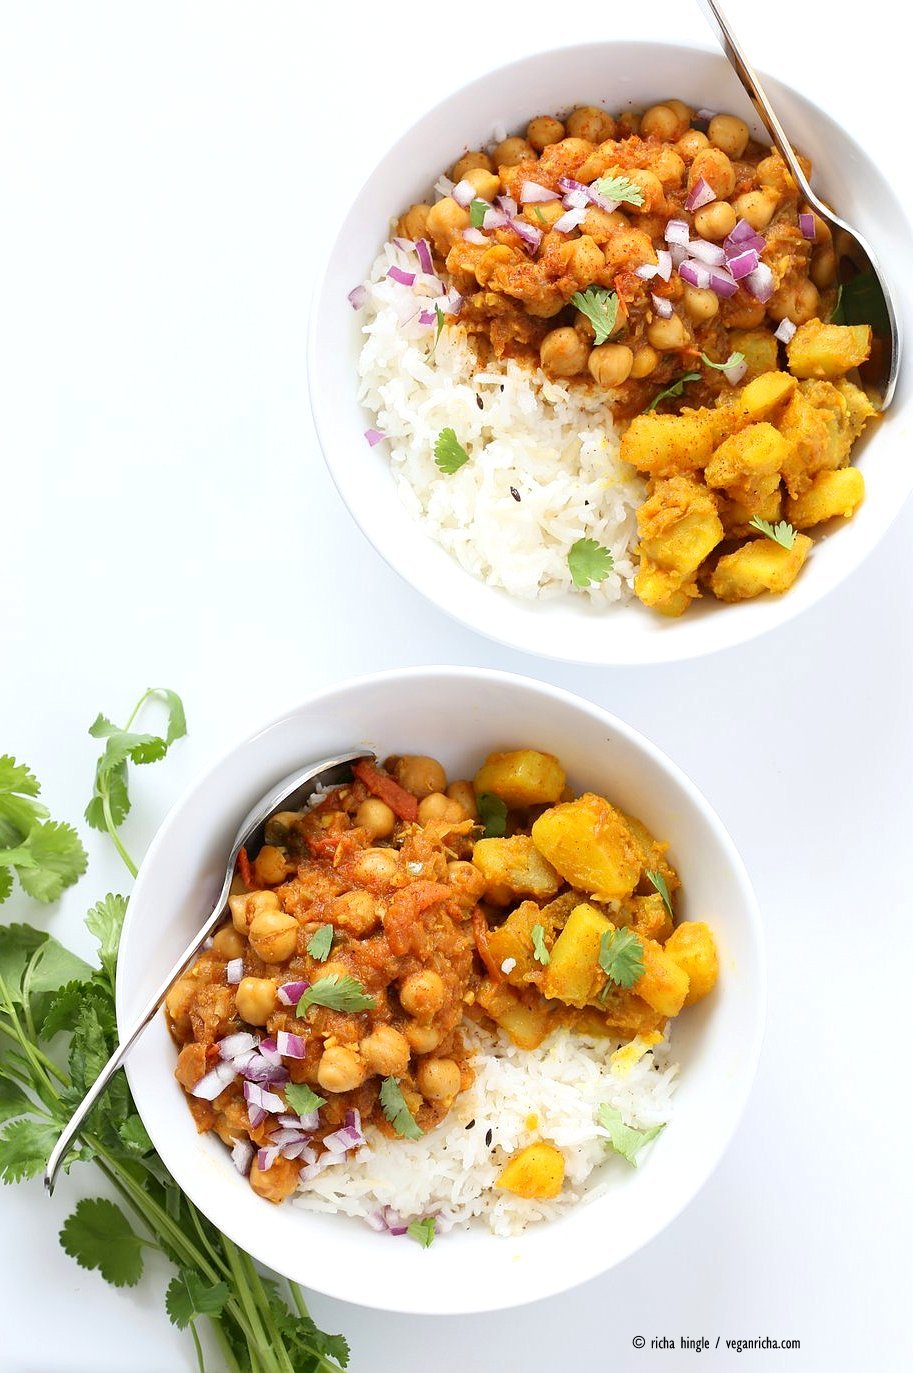 Easy Chickpea Curry Spiced Potato Bowl. Quick Chickpea Curry served with rice or cooked grains and 5 ingredient Spiced Potatoes. Vegan Gluten-free Soy-free Recipe | VeganRicha.com